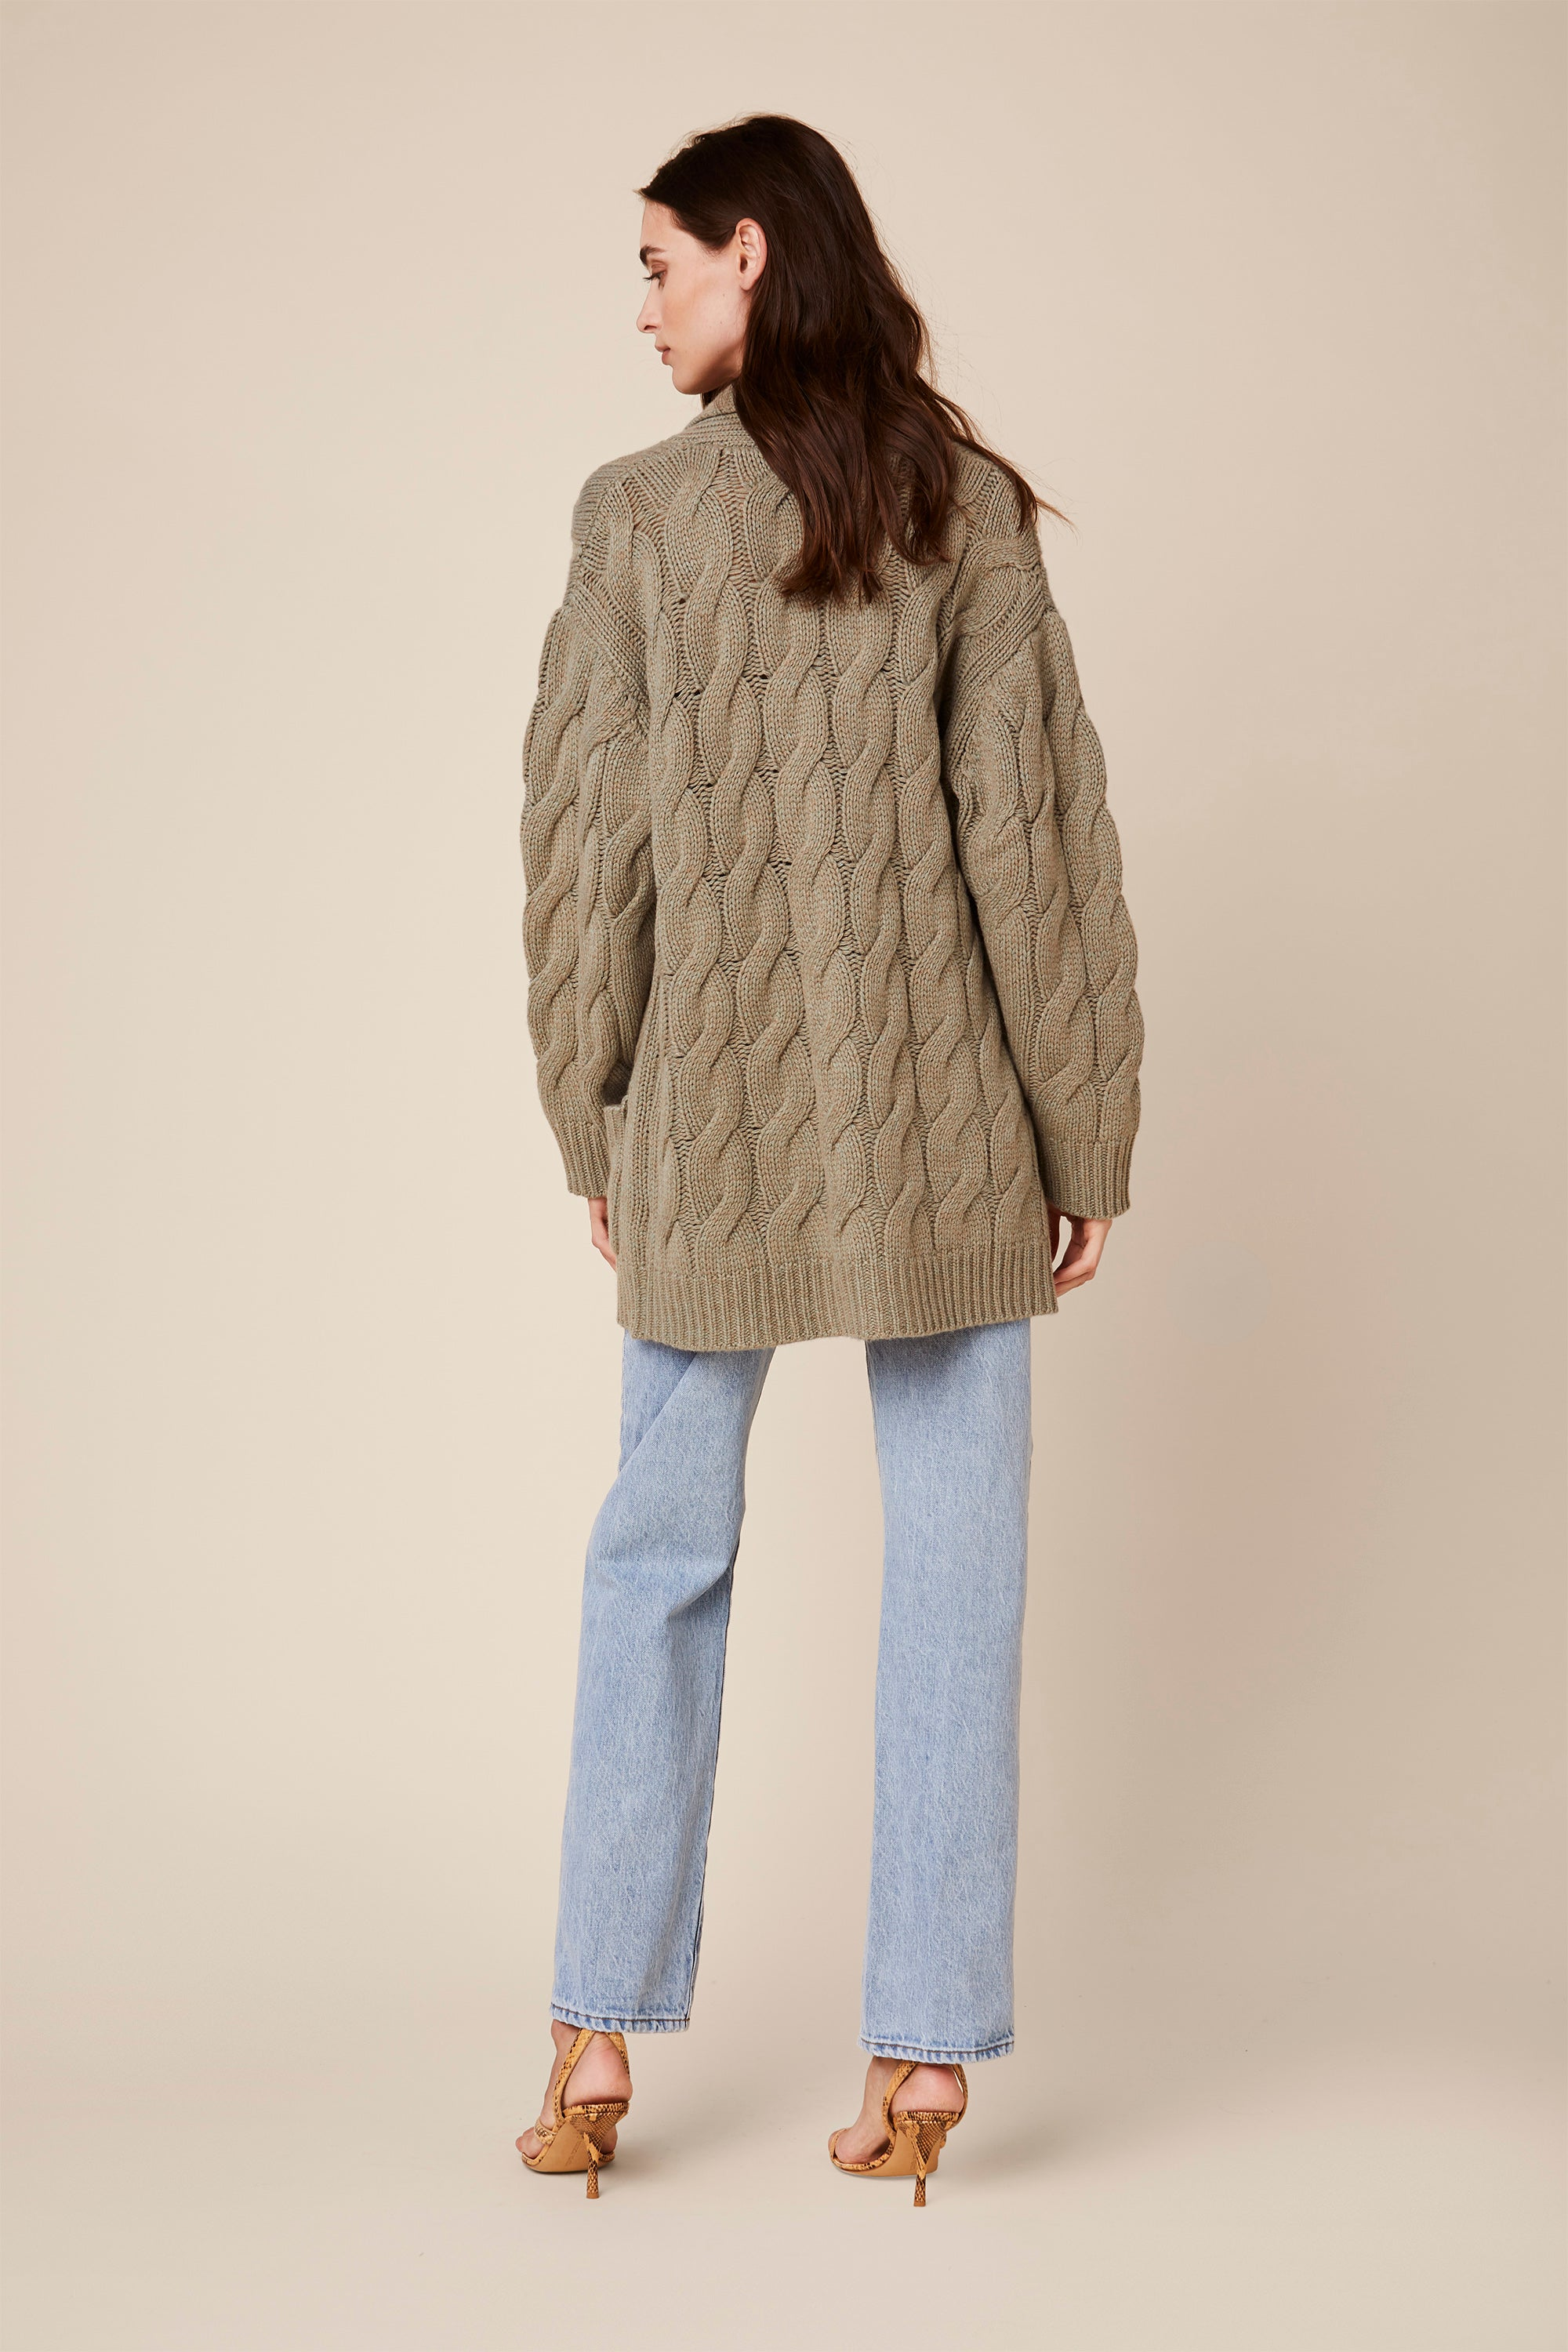 NILES  BRAIDED CASHMERE CARDIGAN | JUNIPER - Final Sale